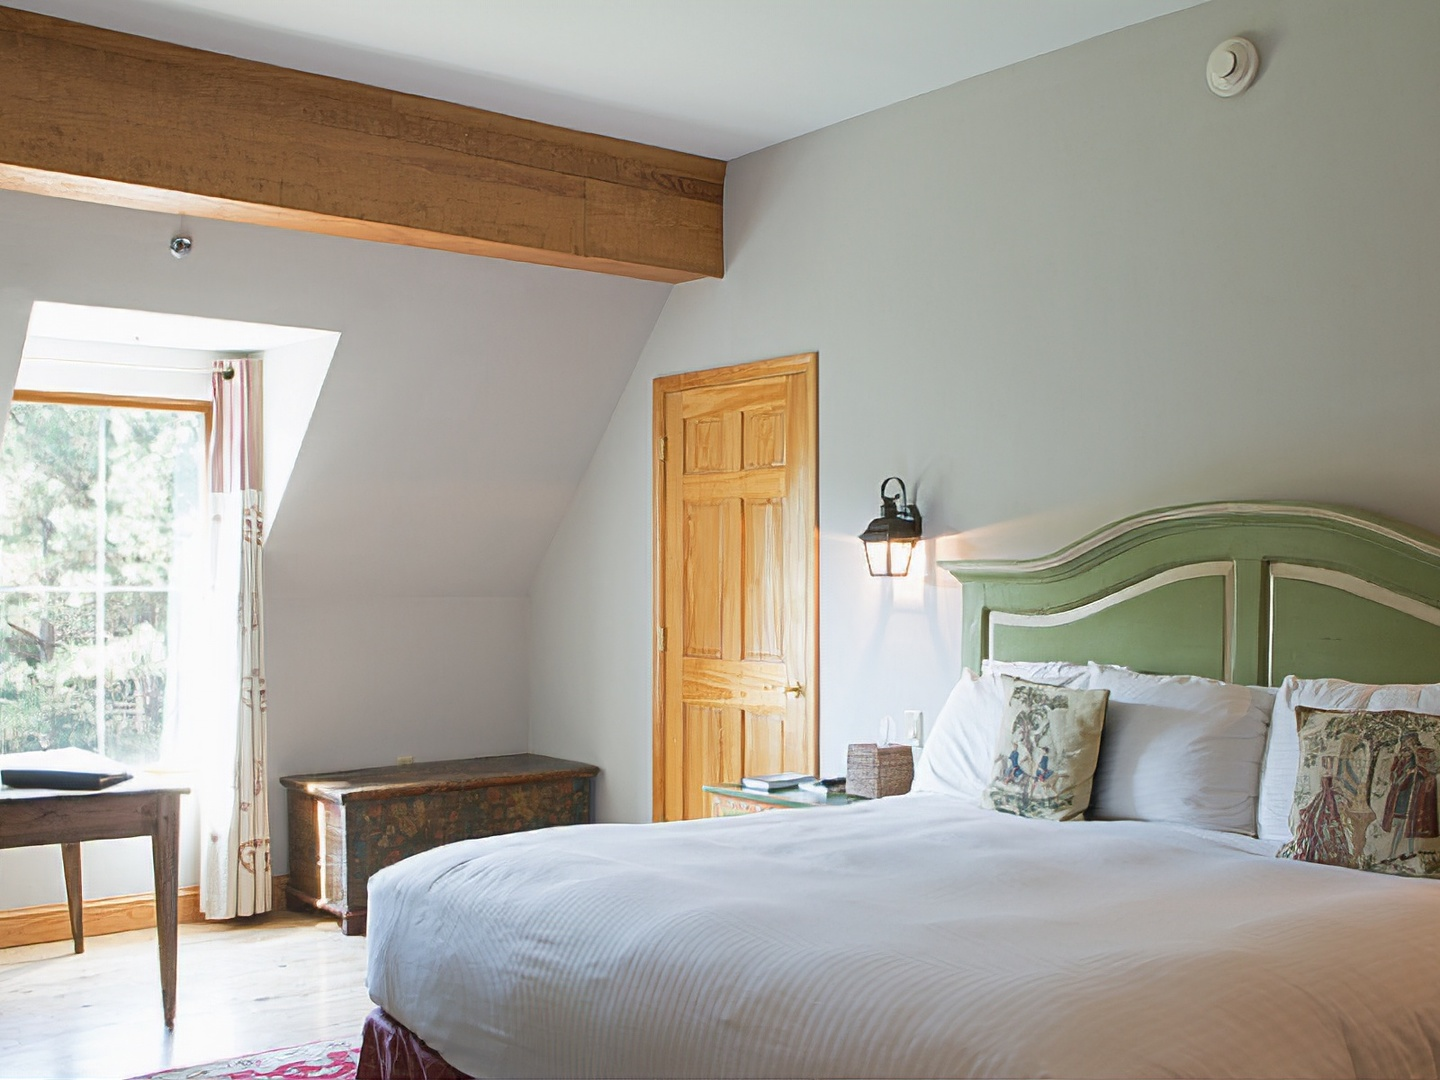 A bedroom with a large bed in a hotel room at Wedmore Place.